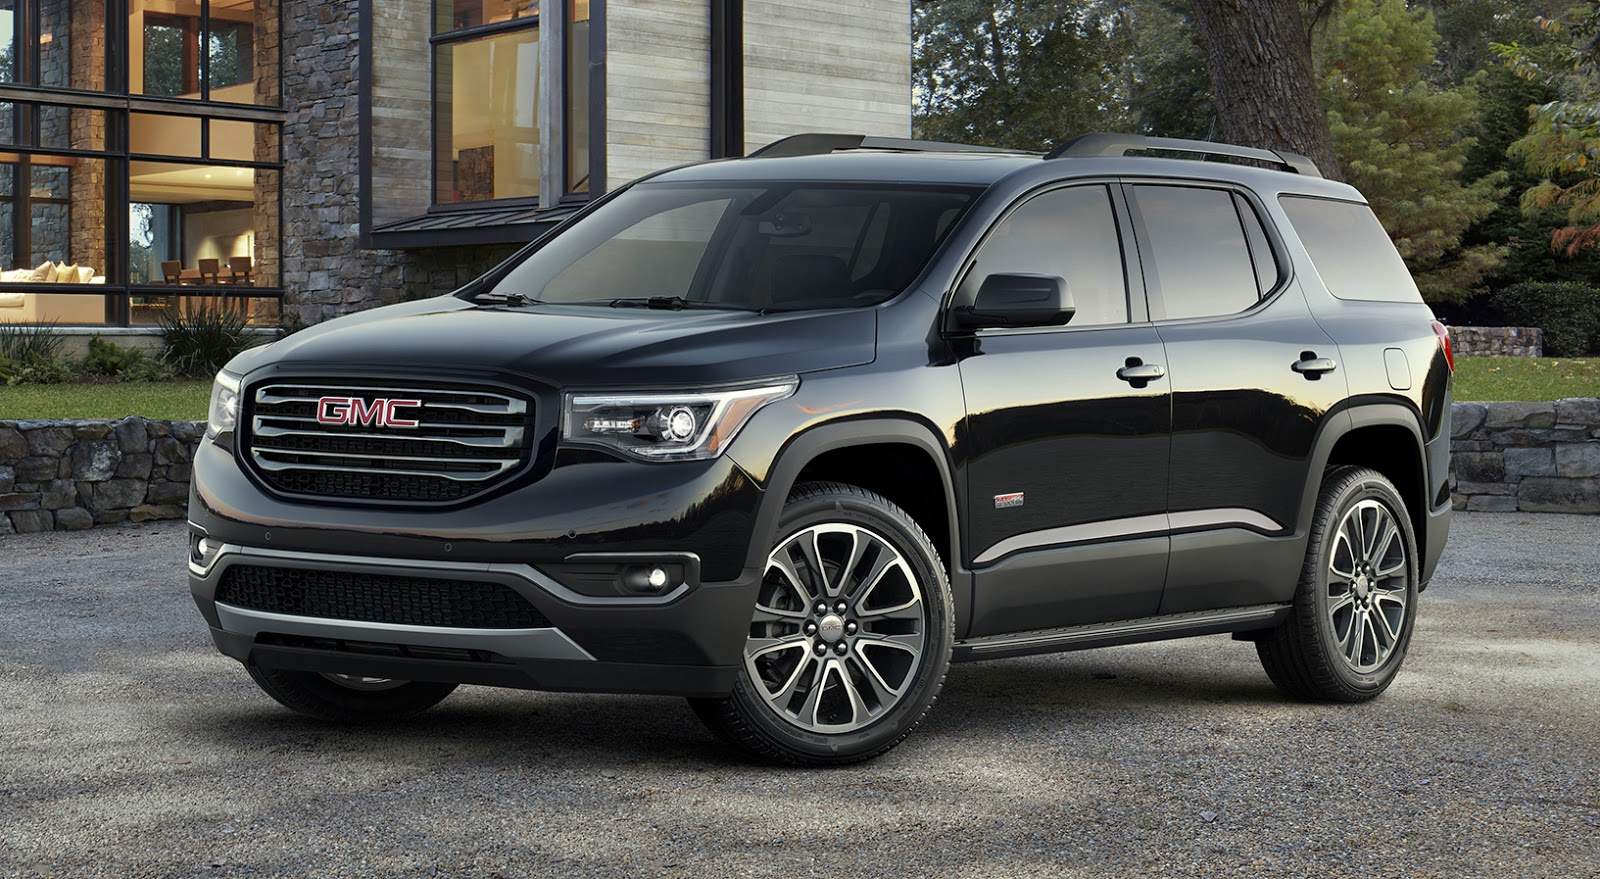 gmc debuts 2017 acadia with all new look all new size and less weight w videos. Black Bedroom Furniture Sets. Home Design Ideas